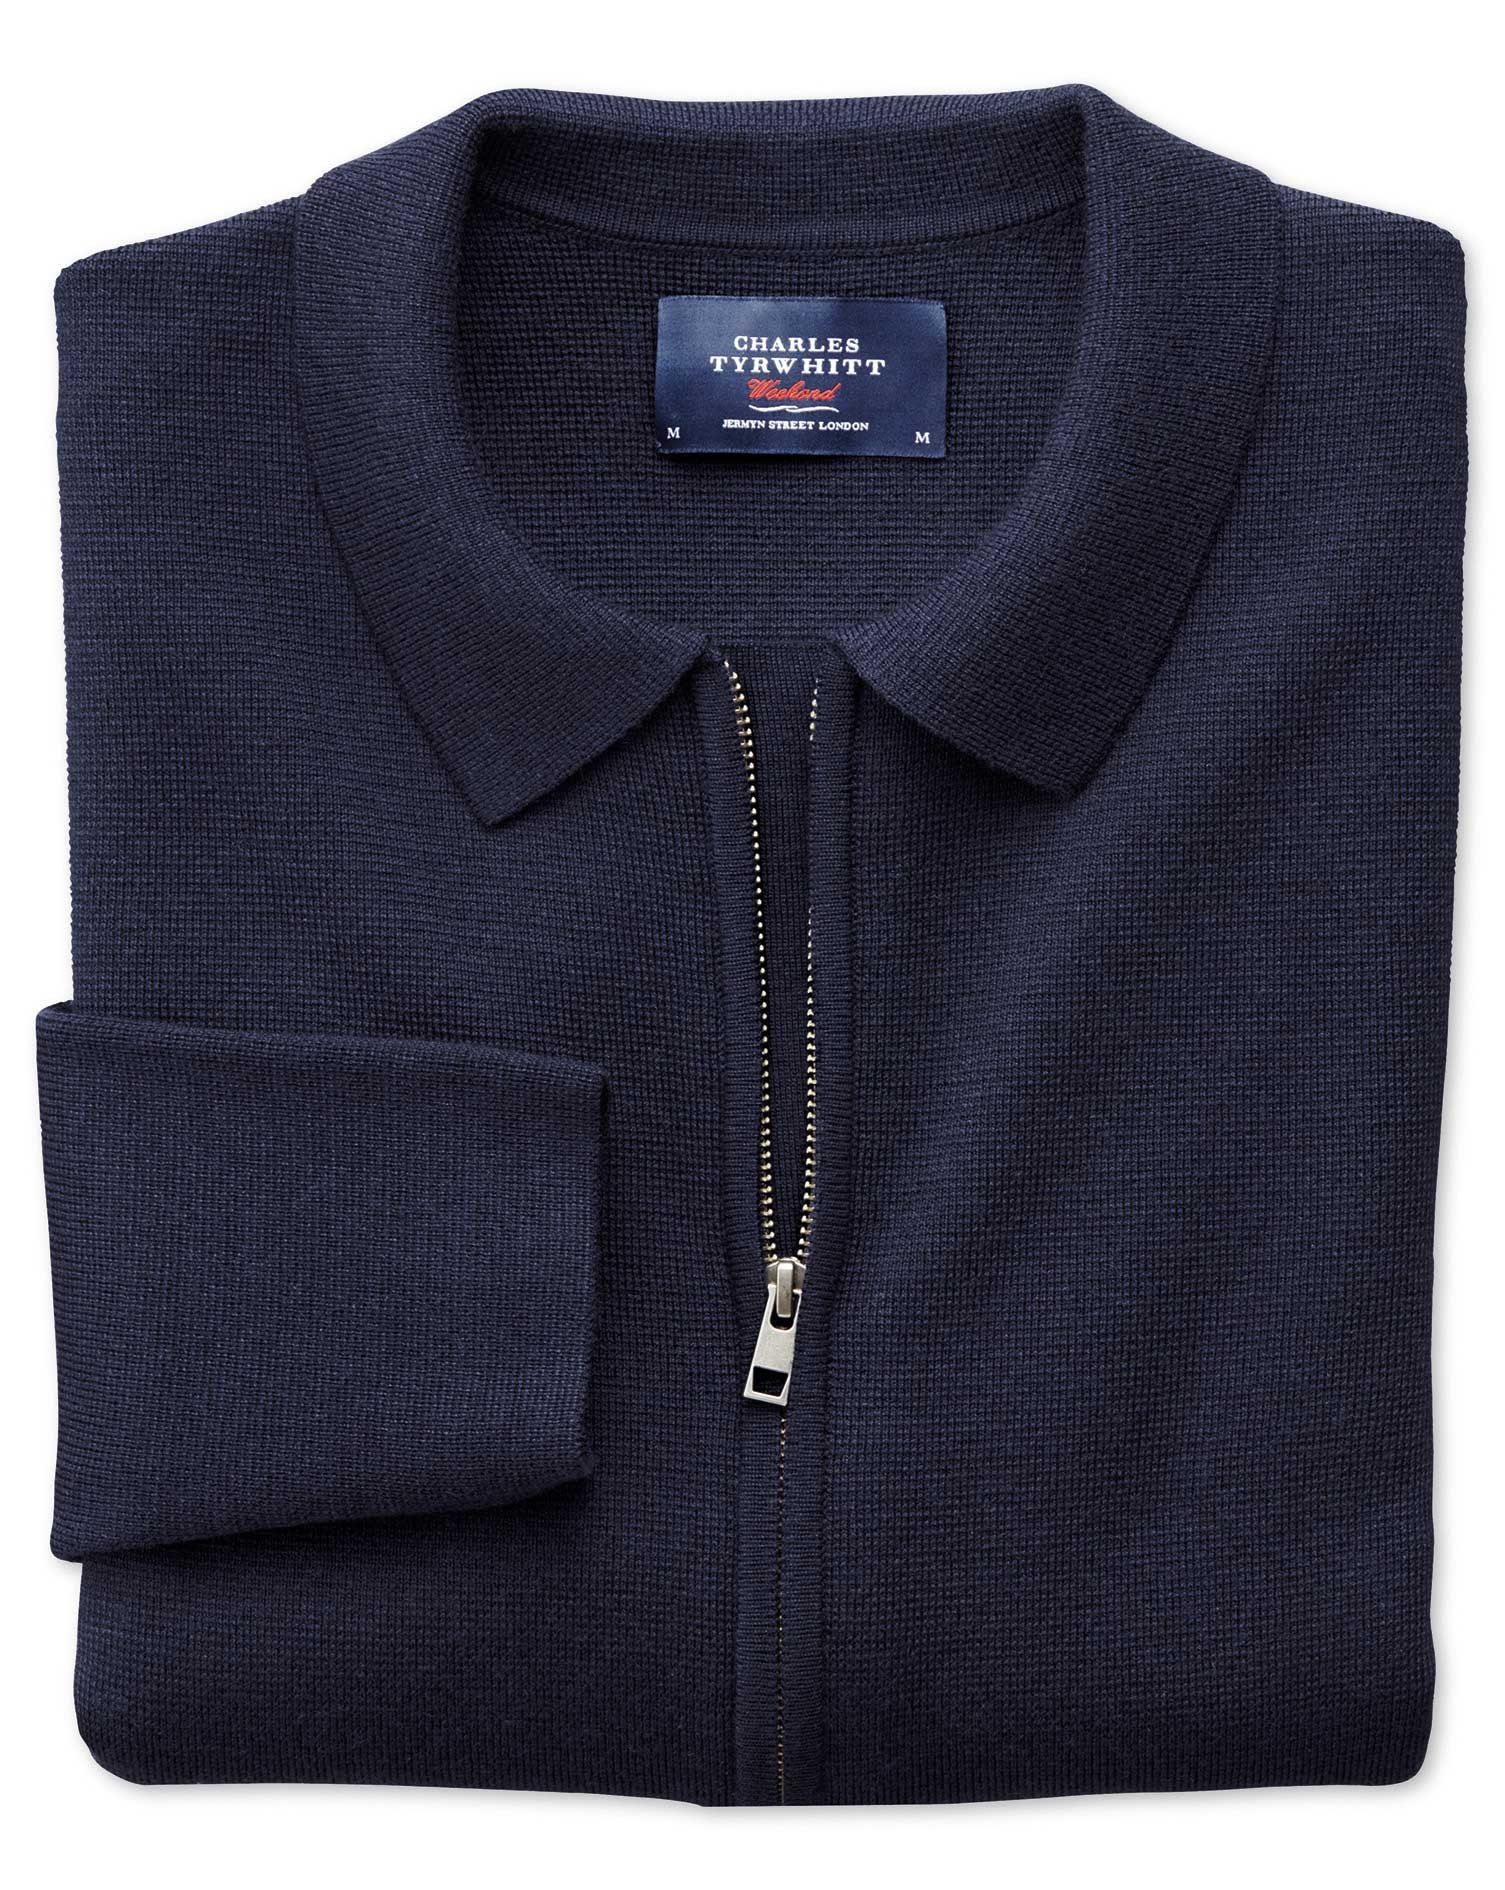 Navy Merino Wool Zip Jacket Size XXL by Charles Tyrwhitt